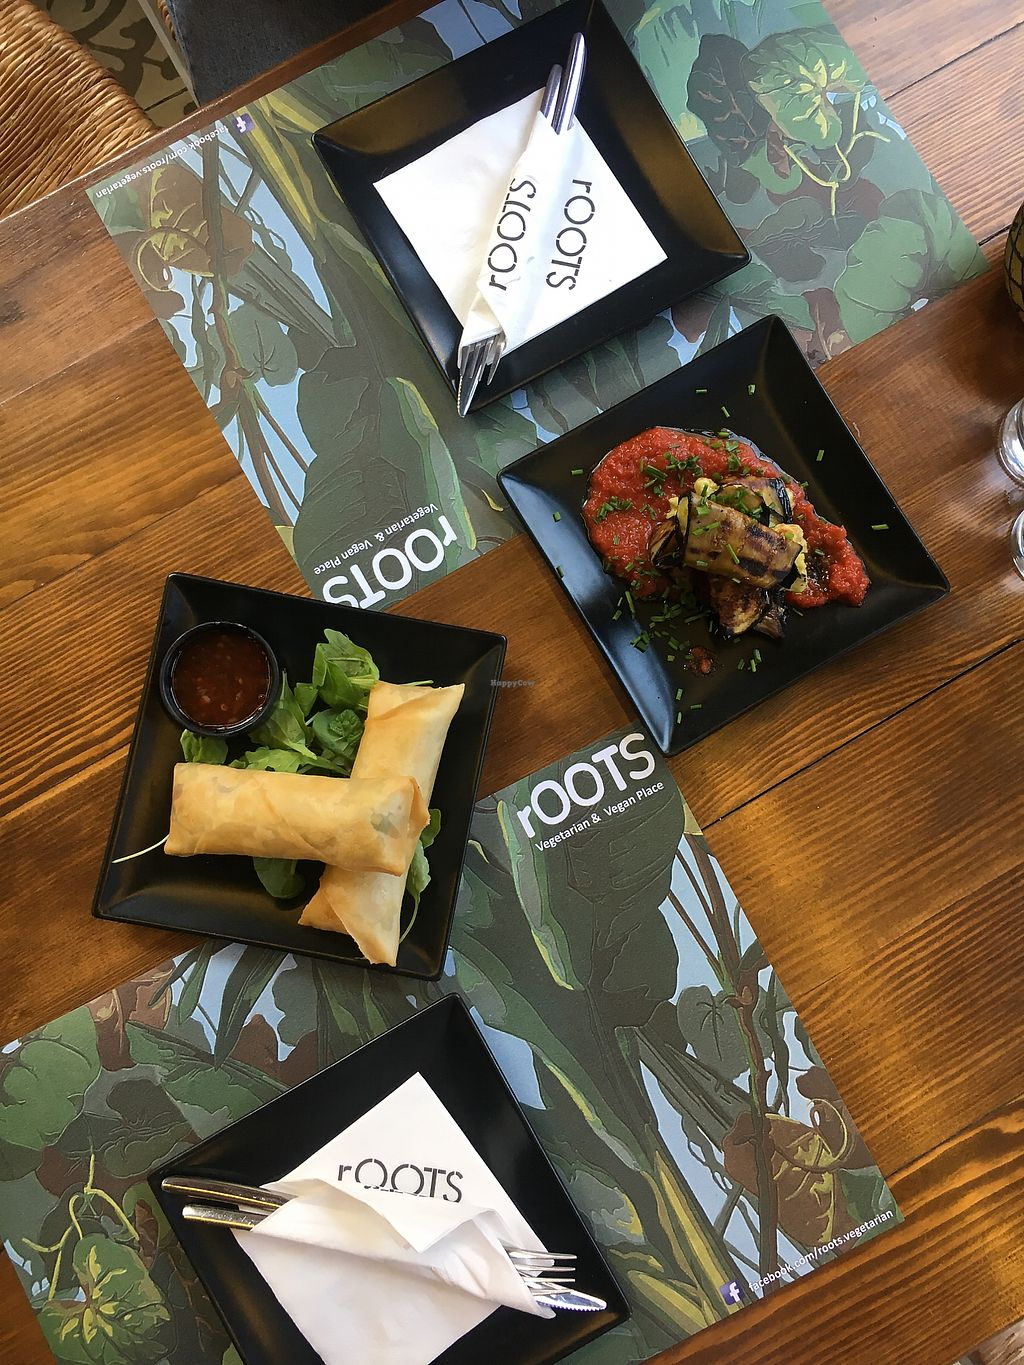 """Photo of rOOTS  by <a href=""""/members/profile/ovidiucodreanu"""">ovidiucodreanu</a> <br/>Spring rolls and stuffed aubergines with guacamole <br/> August 23, 2017  - <a href='/contact/abuse/image/56798/296214'>Report</a>"""